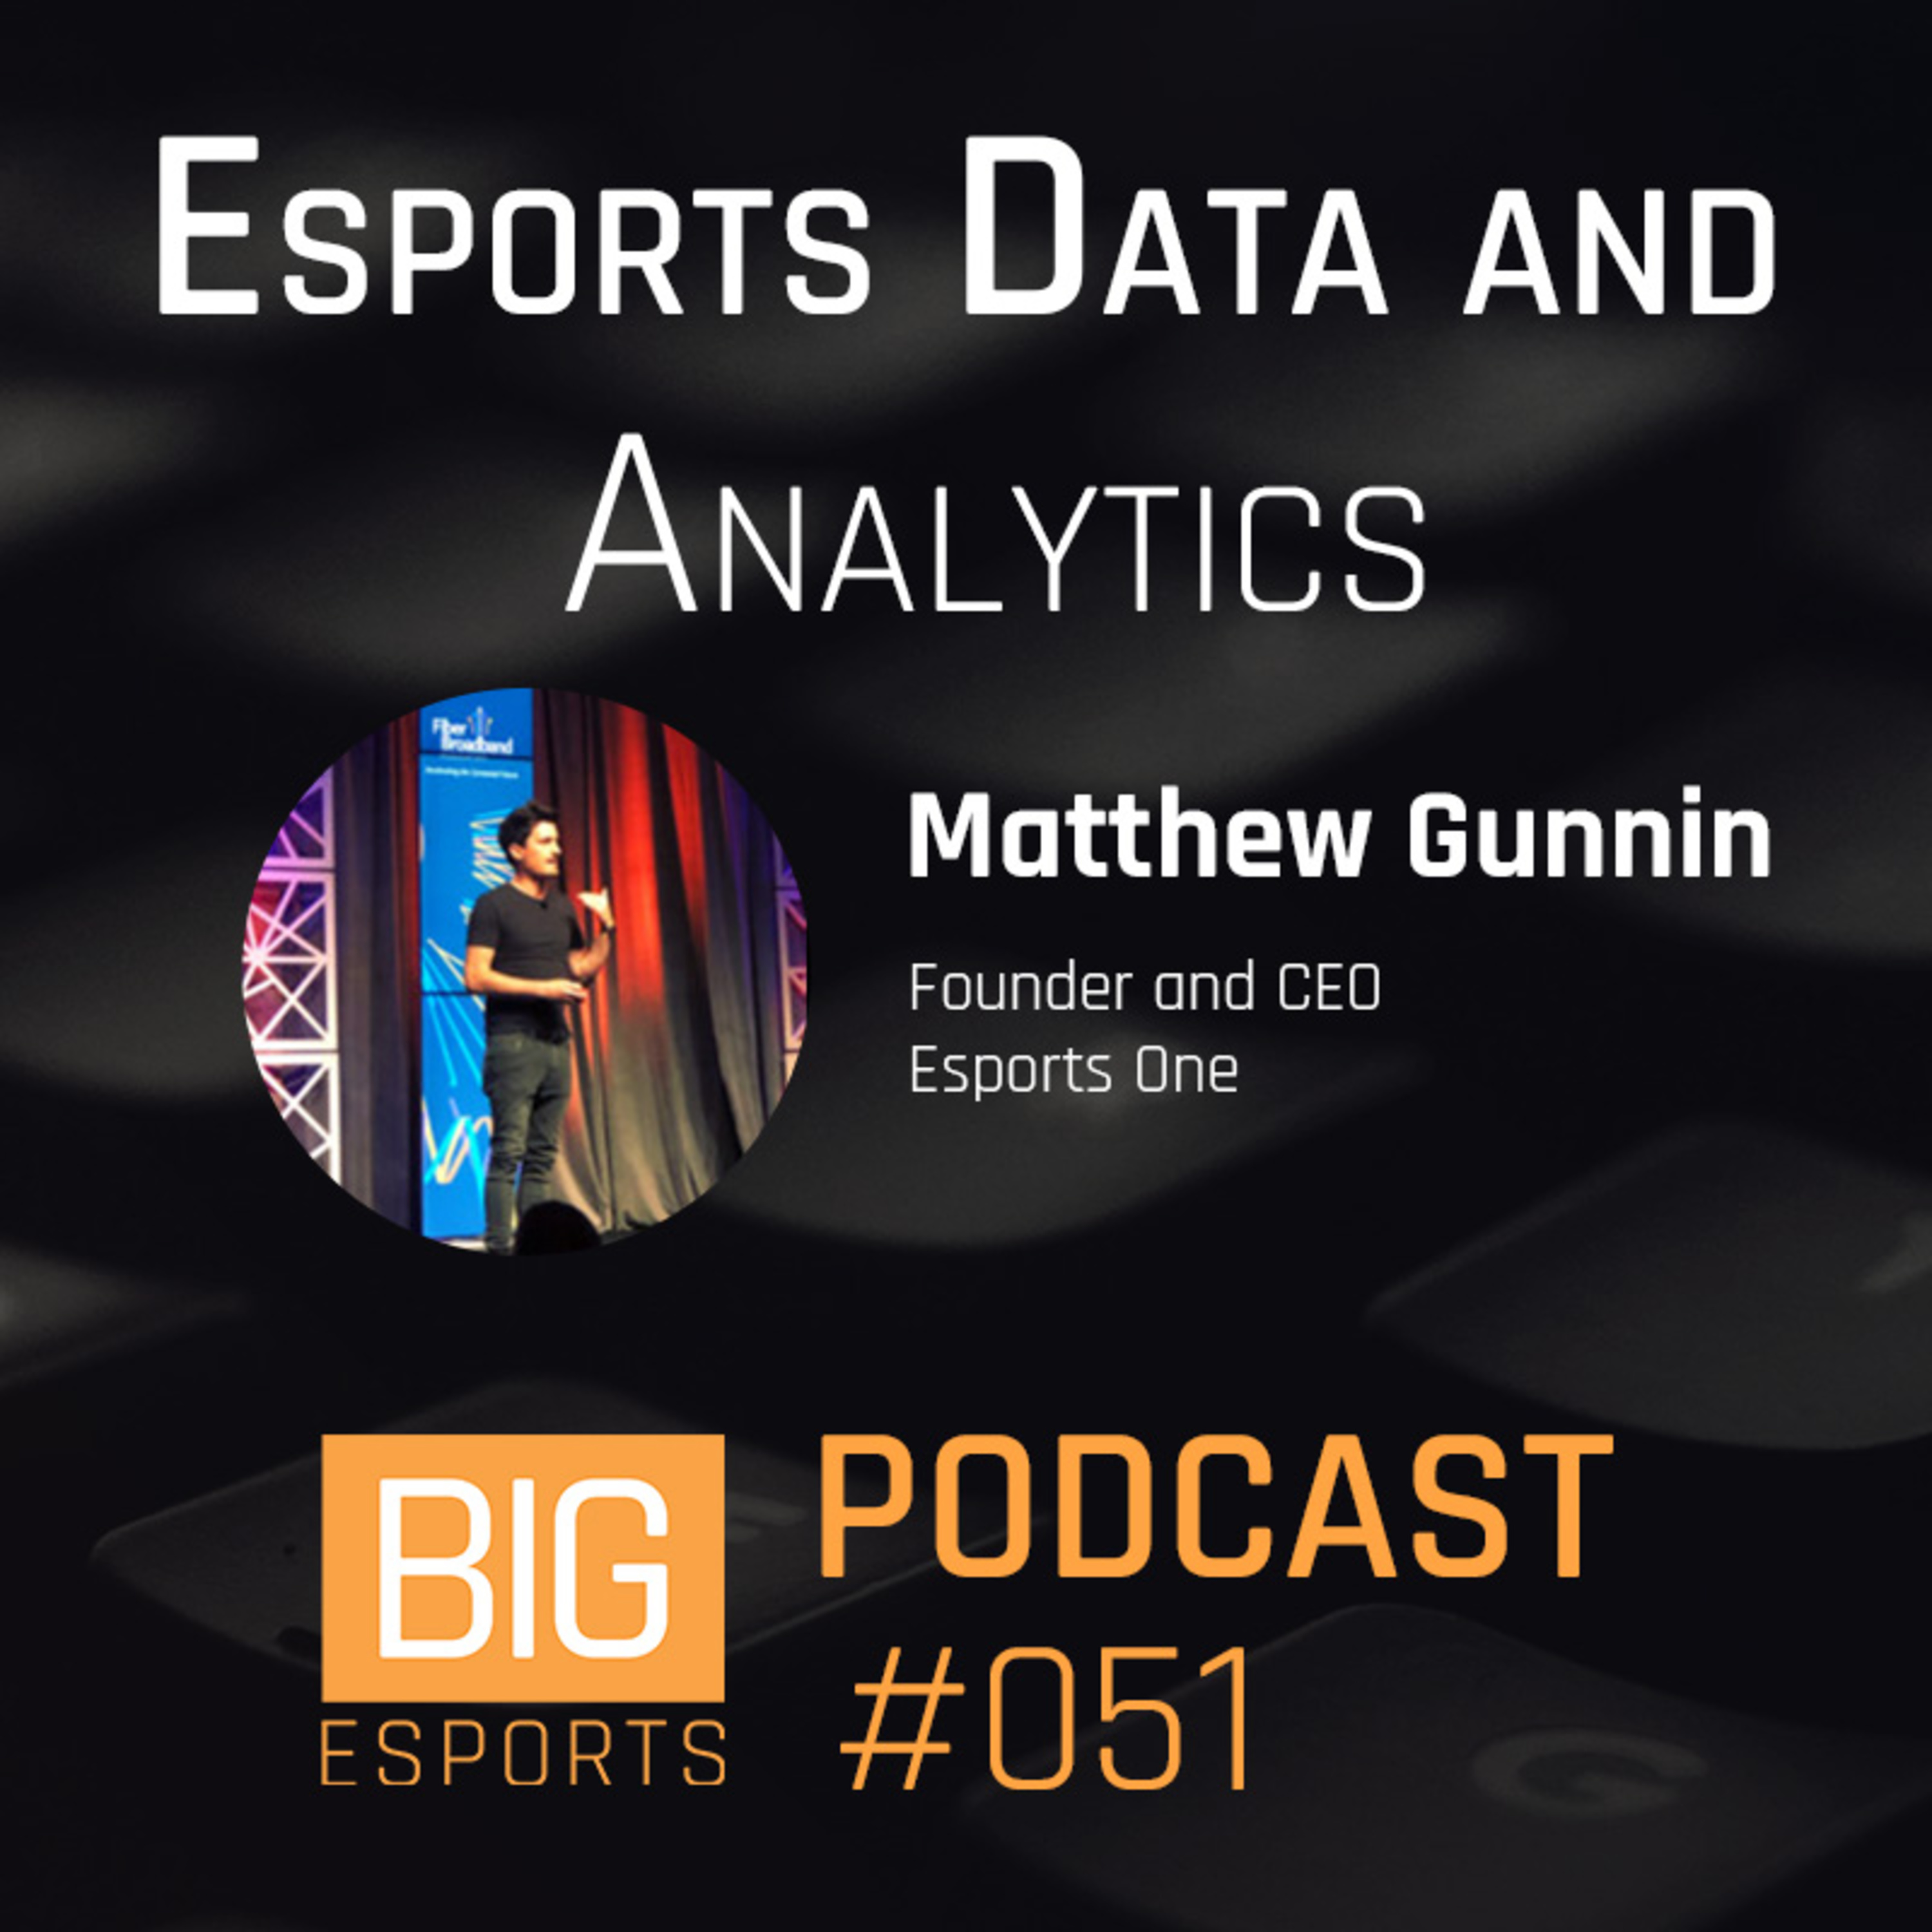 #051 - Esports Data and Analytics with Matthew Gunnin - Founder and CEO of Esports One